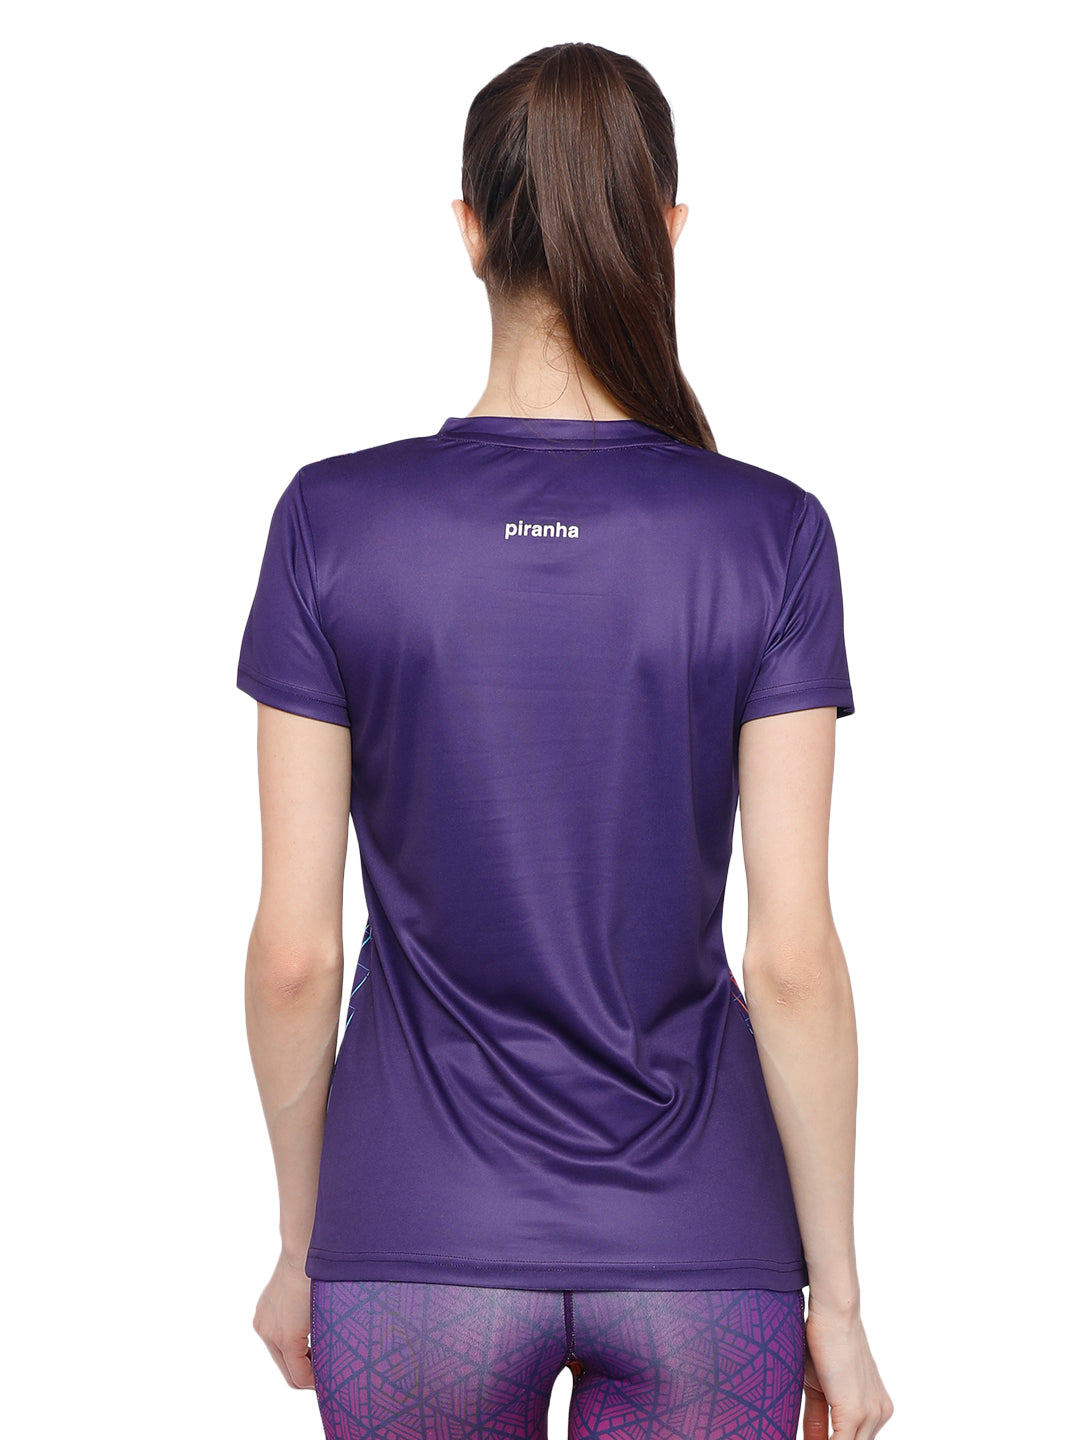 Piranha Women's Purple T-shirt TSG183